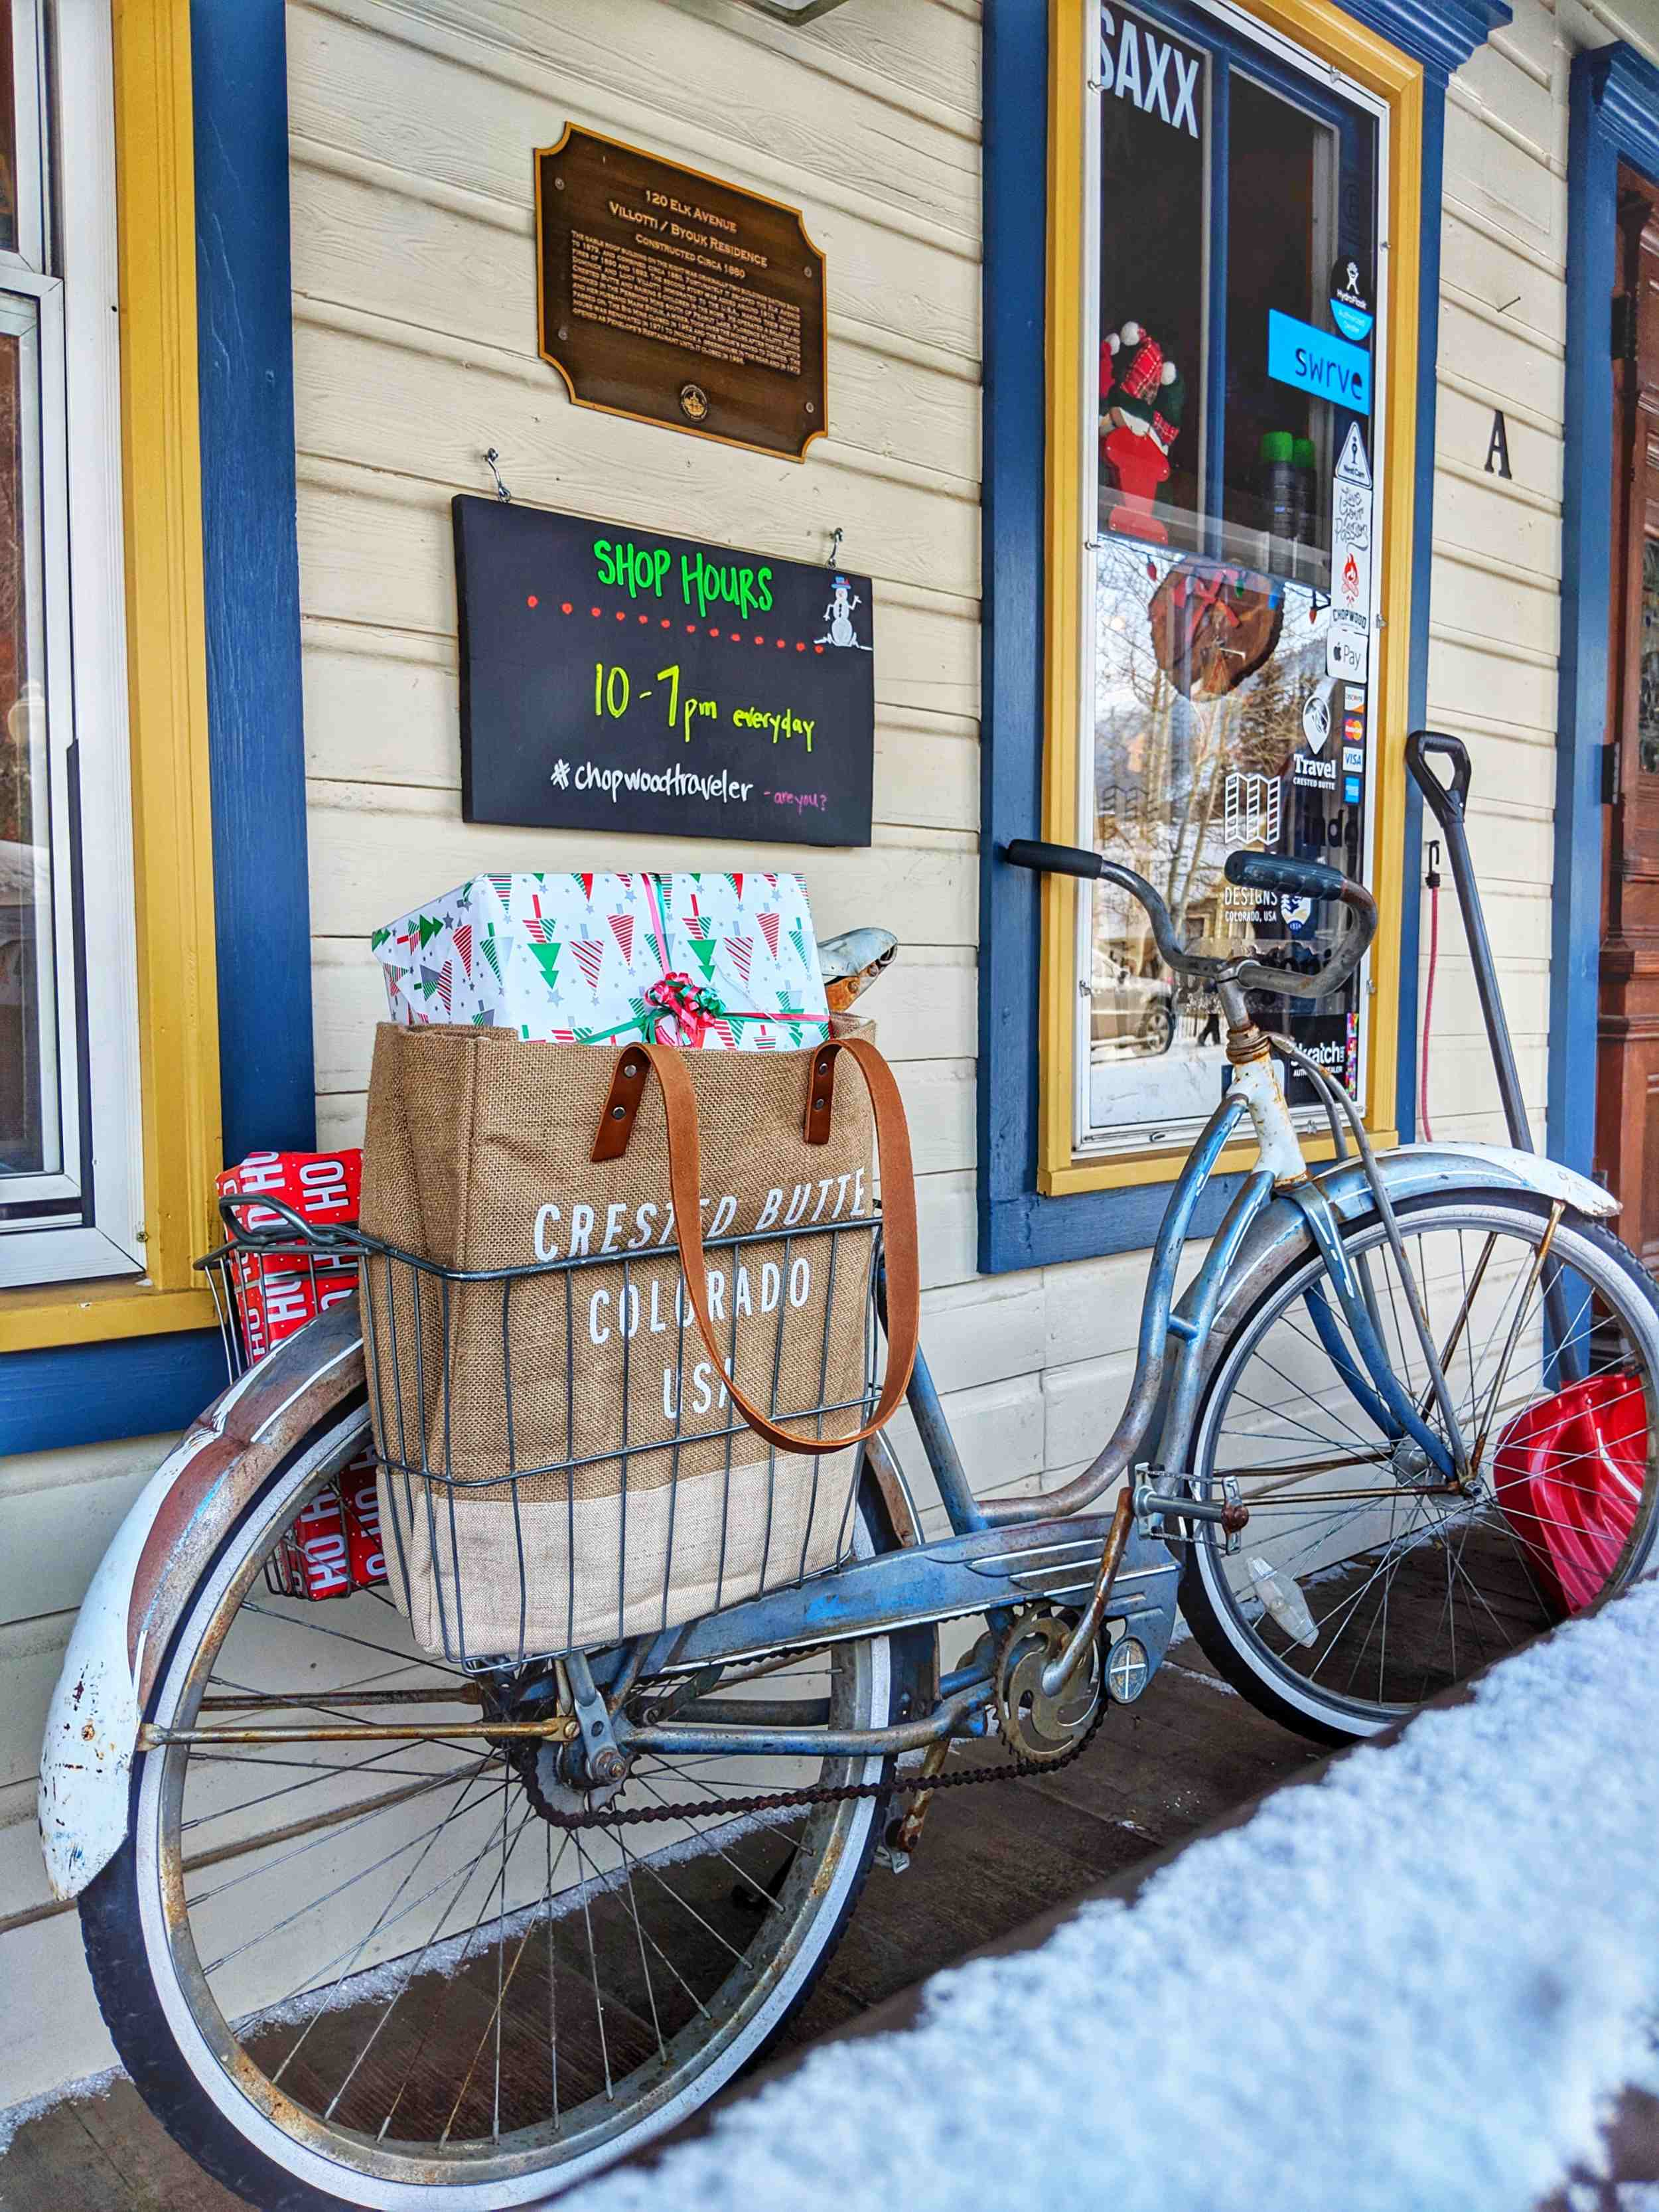 Chopwood Mercantile, Crested Butte, CO